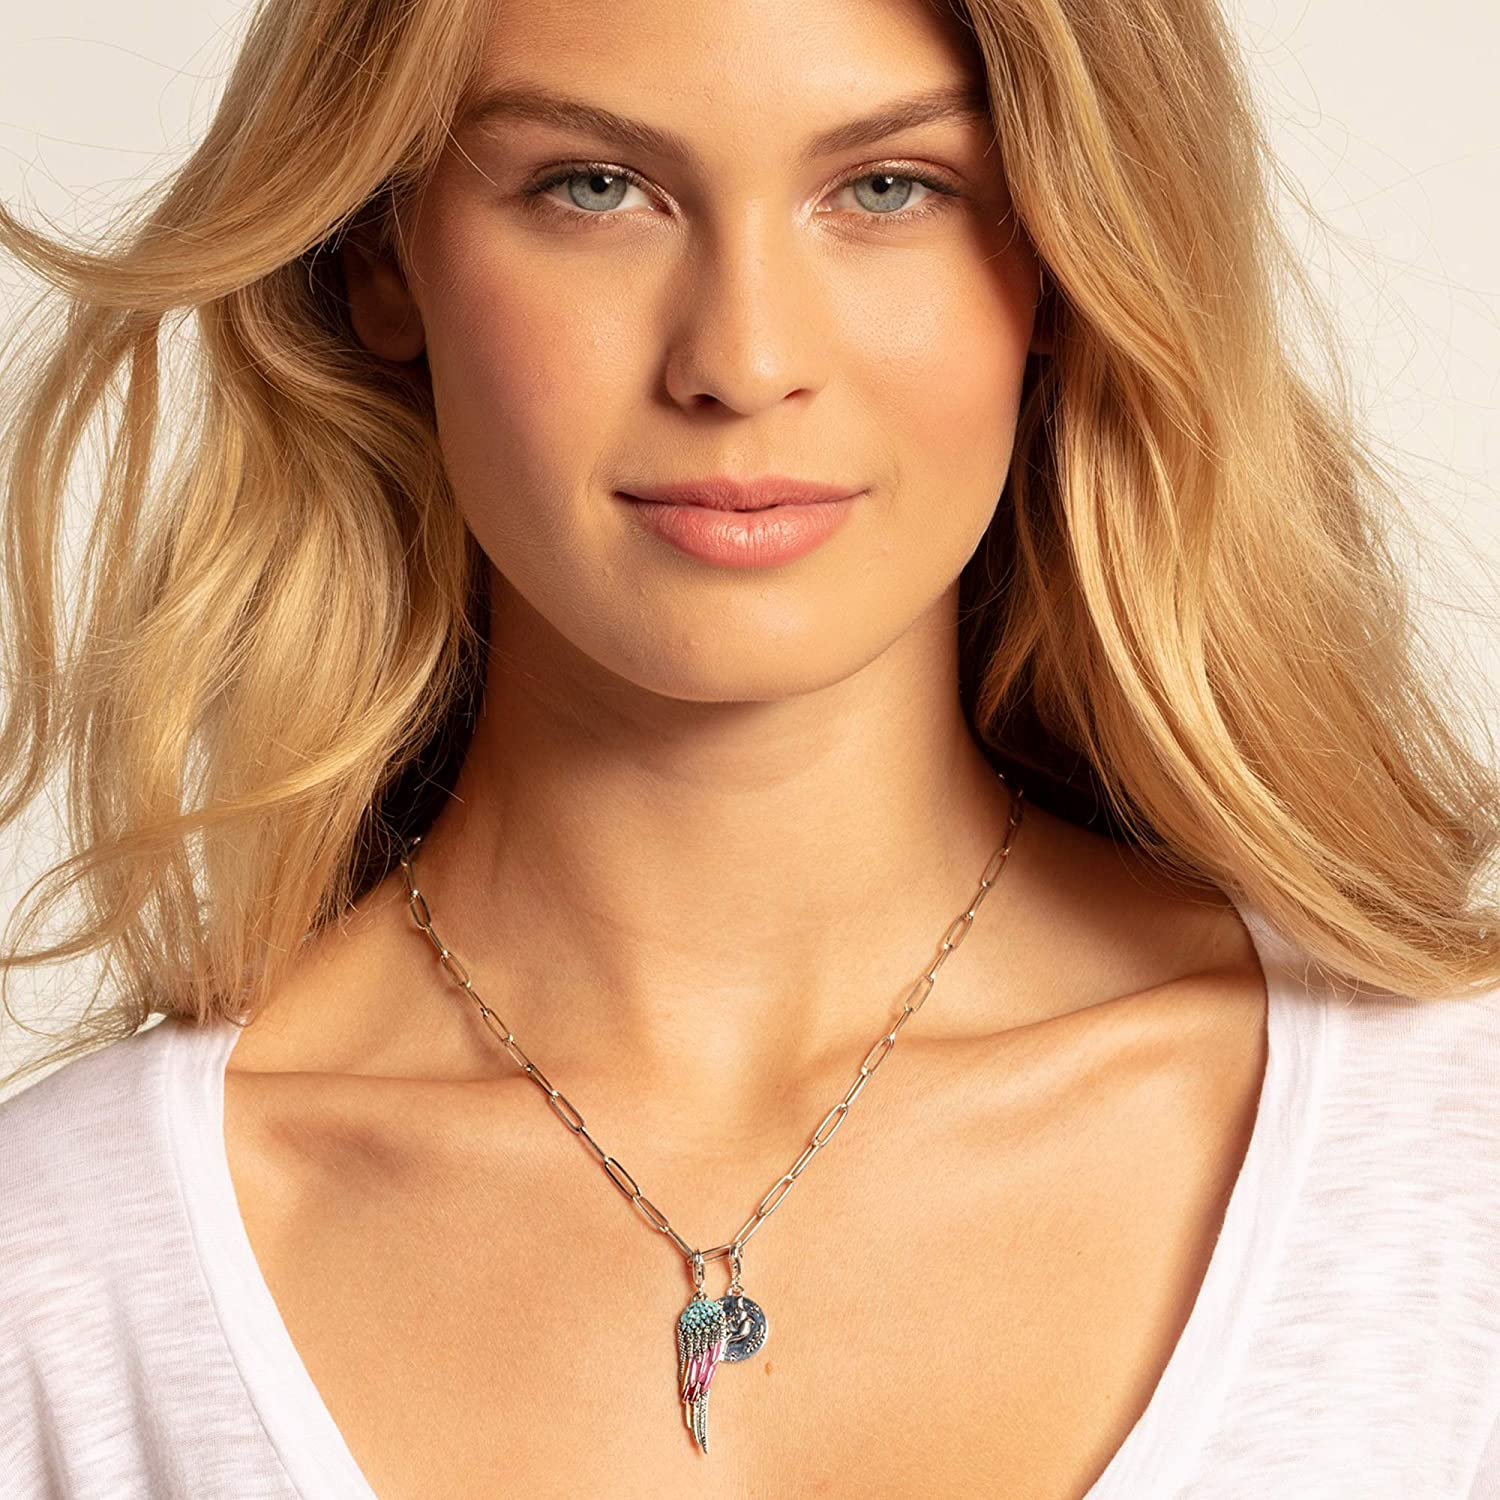 Thomas Sabo Femmes-Charm-Pendentif Coin Colombe Charm Club Argent Sterling 925 1701-637-21